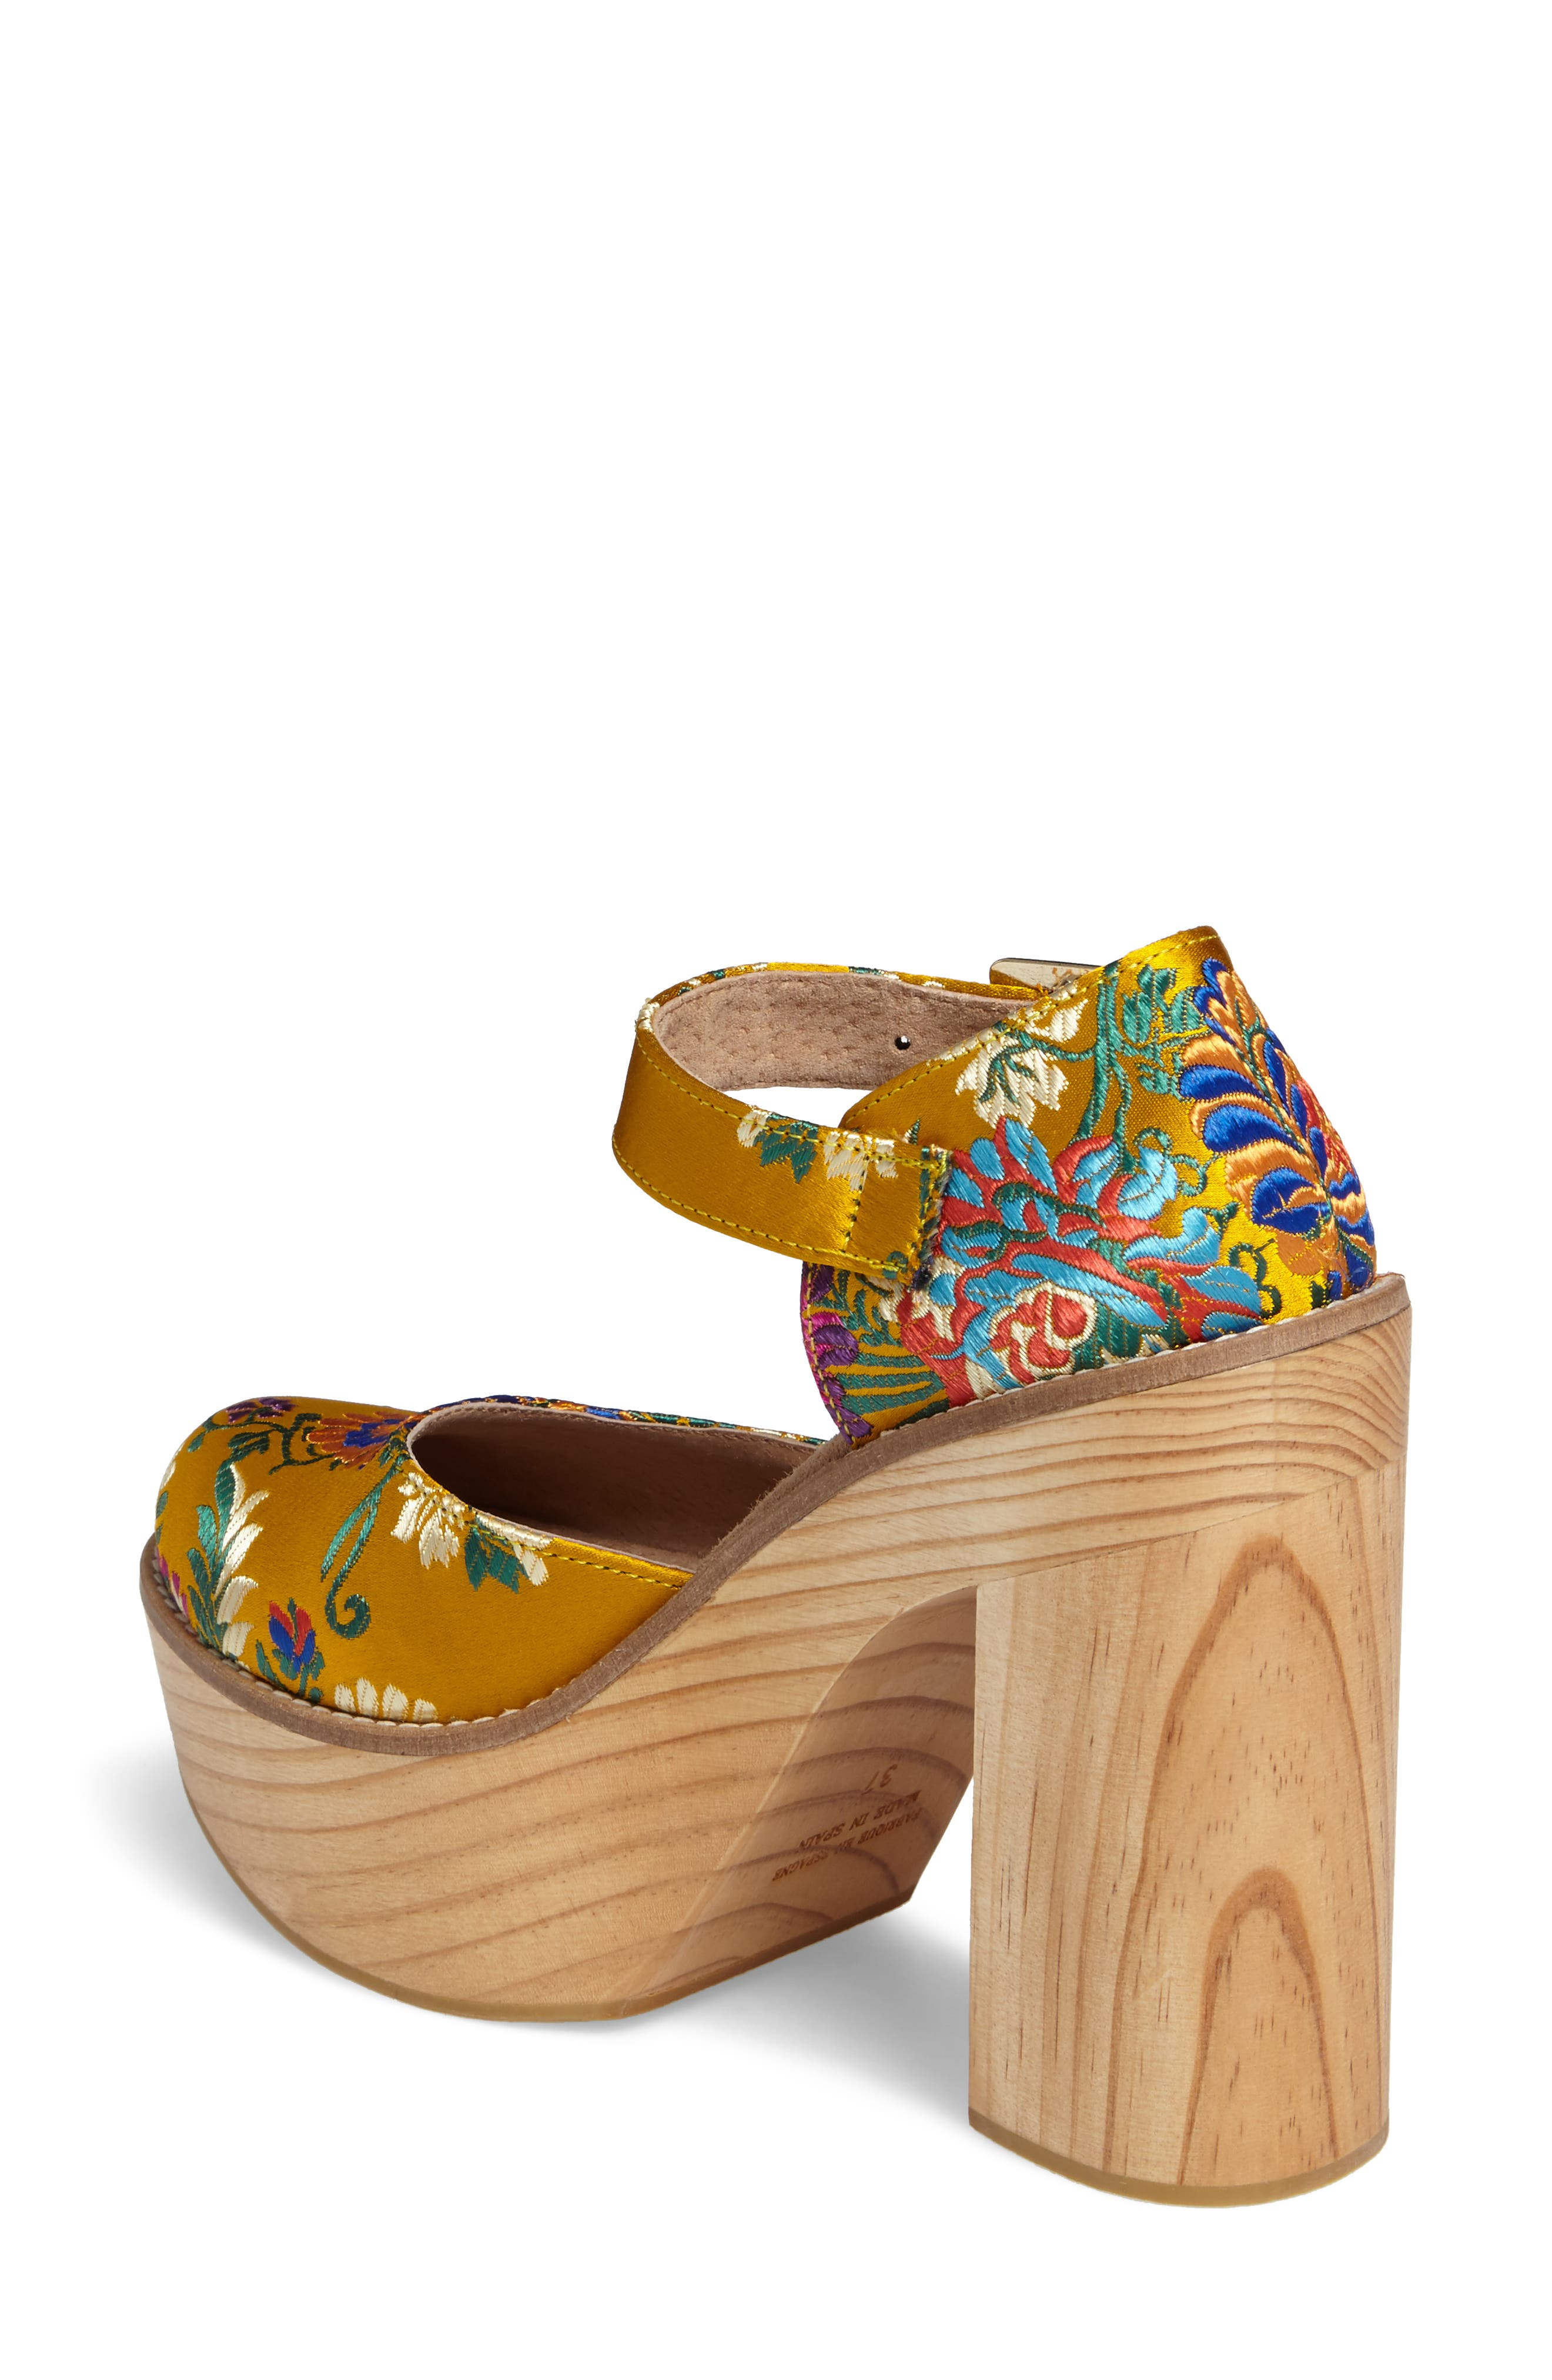 Starlet Embroidered Platform Pump,                             Alternate thumbnail 2, color,                             Yellow